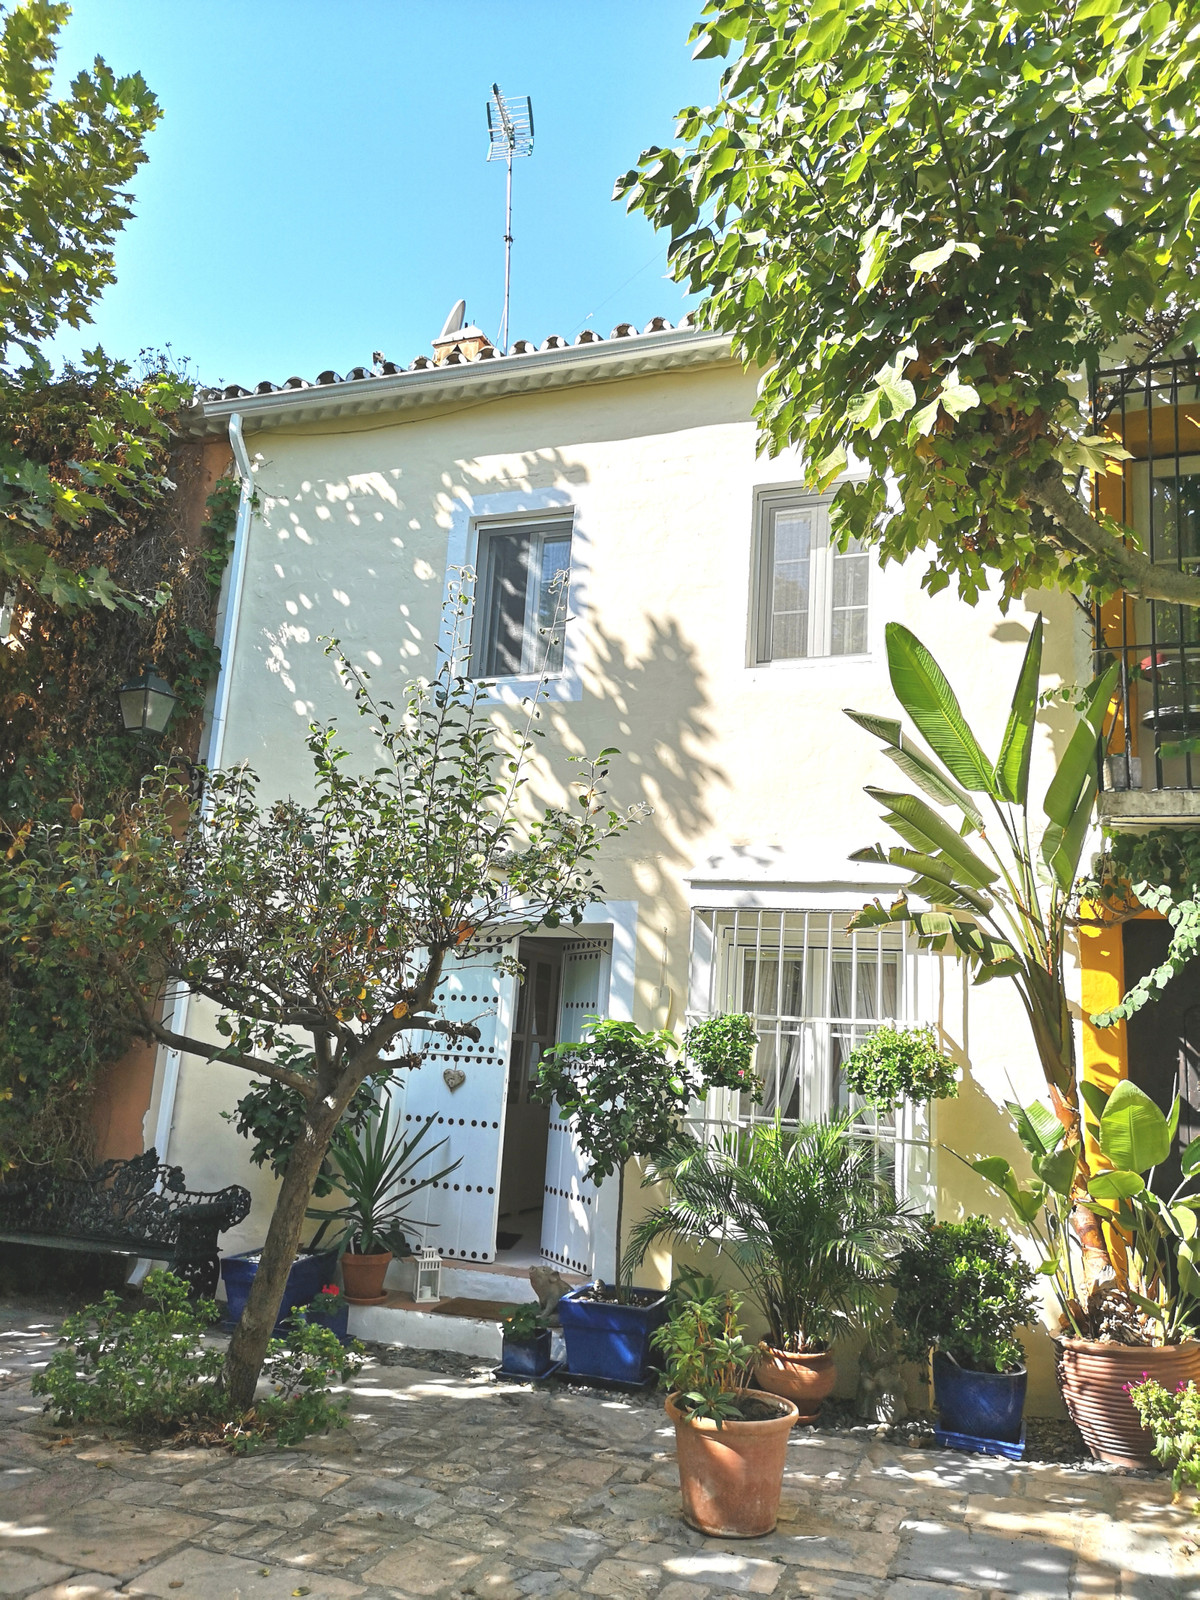 PRICE JUST REDUCED!!! A fully renovoted 2 bedroom house within walking distance of the center of Mar, Spain